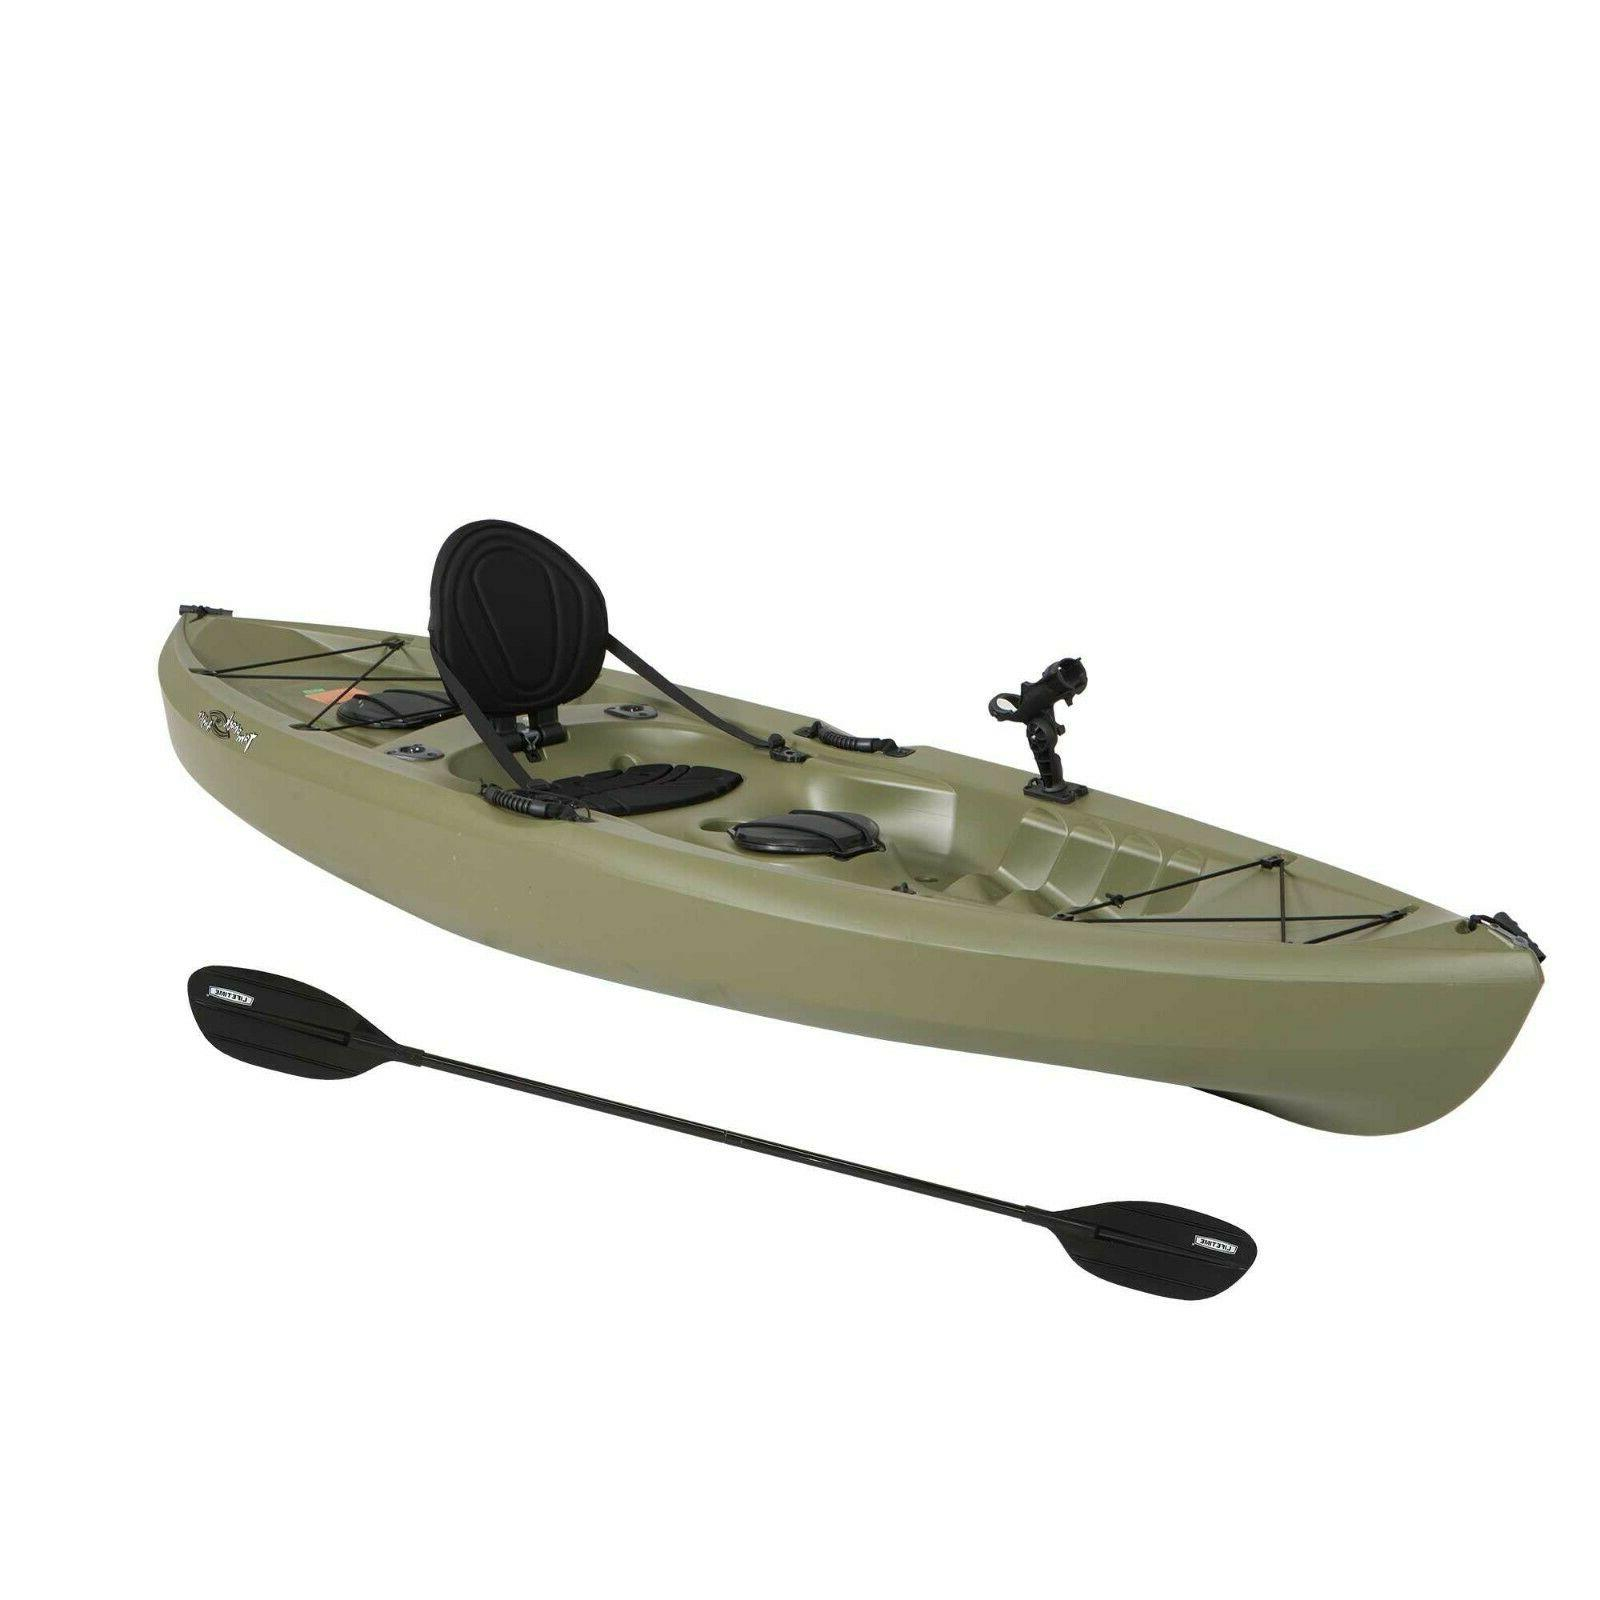 Olive Green Fishing Kayak Paddle Included Deep Hull Stable B